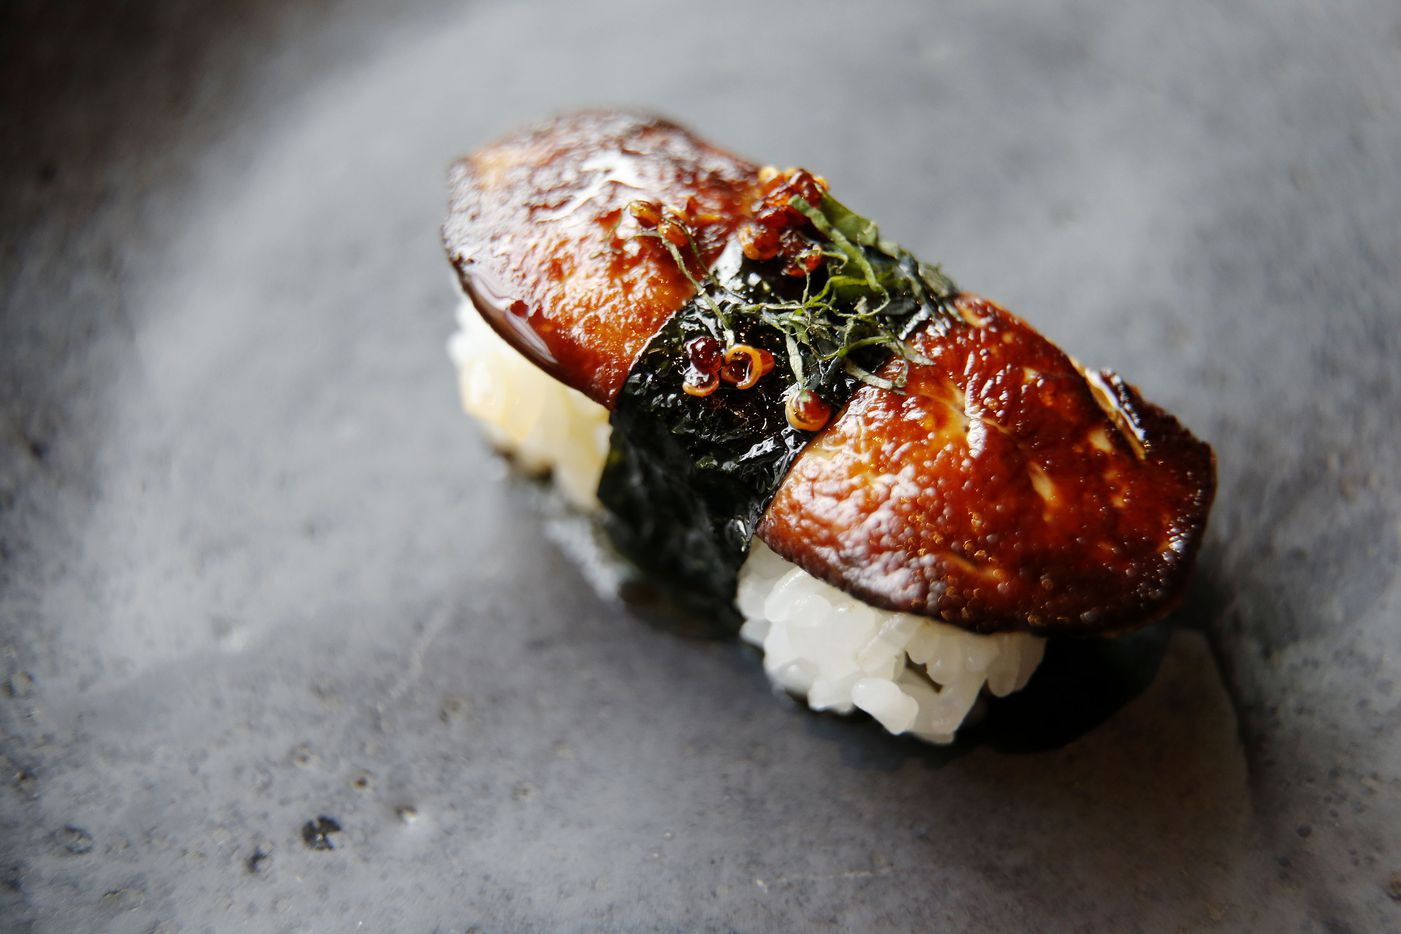 Foie gras nigiri sushi. The seared foie is brushed with fish caramel, banded with nori and garnished with candied quinoa and slivered negi.